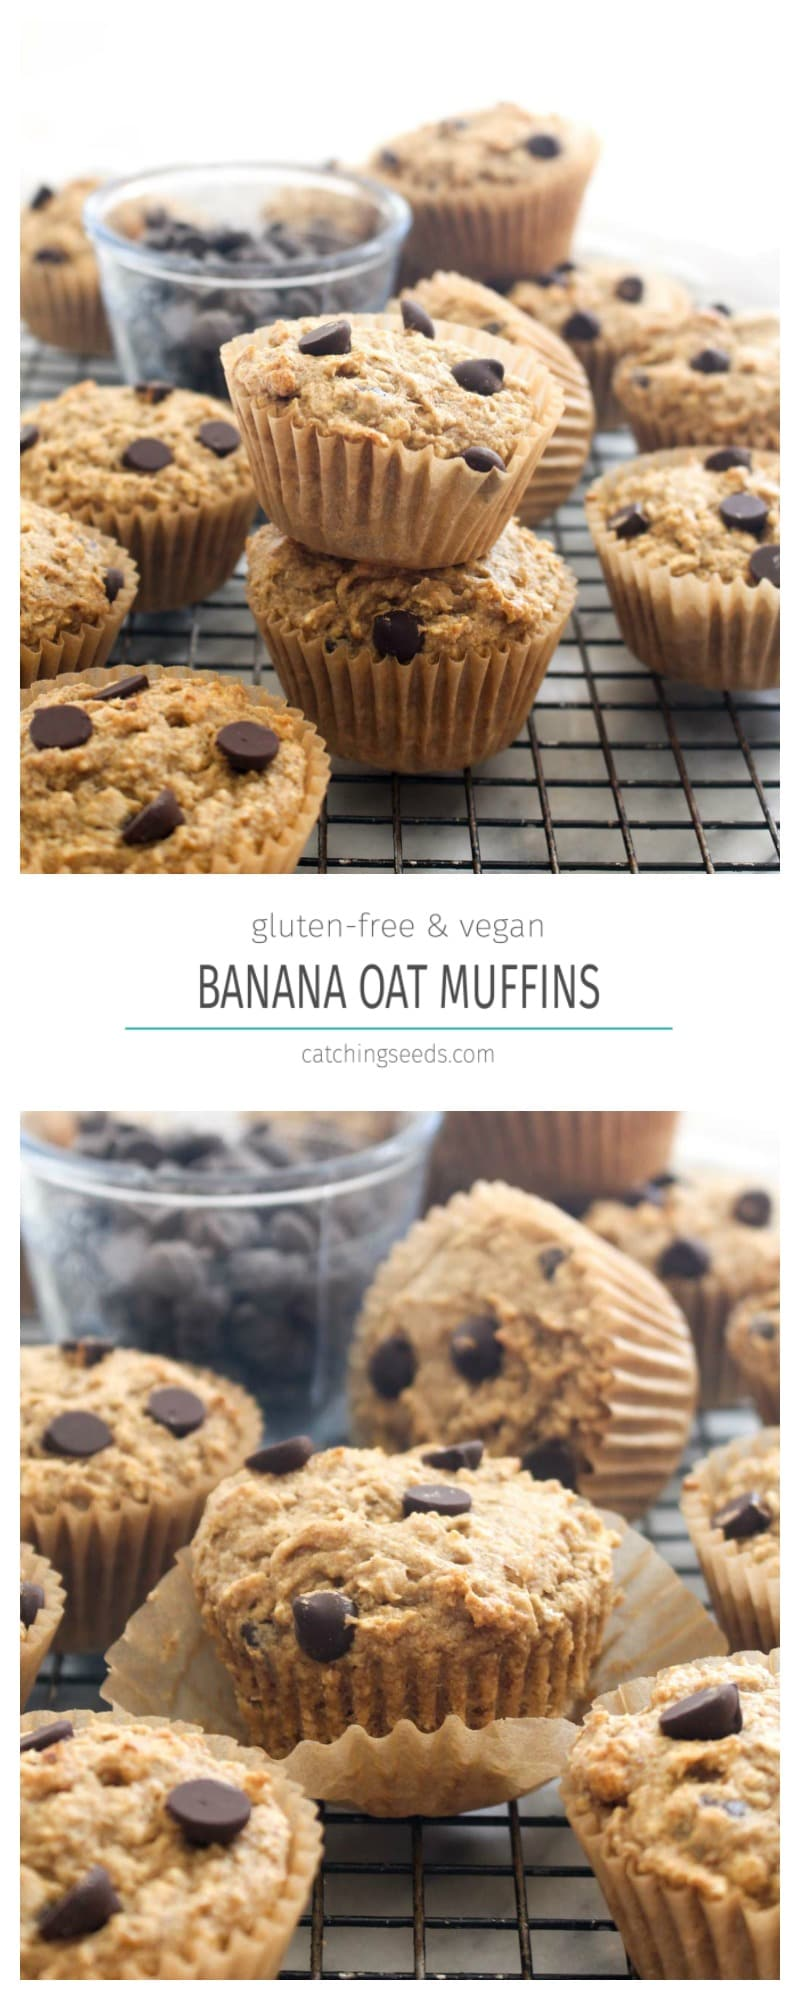 These Gluten Free Banana Oat Muffins are also dairy free and egg free. Natural sweeteners create a delicious and moist muffin. You will never guess this recipe is healthy! | CatchingSeeds.com